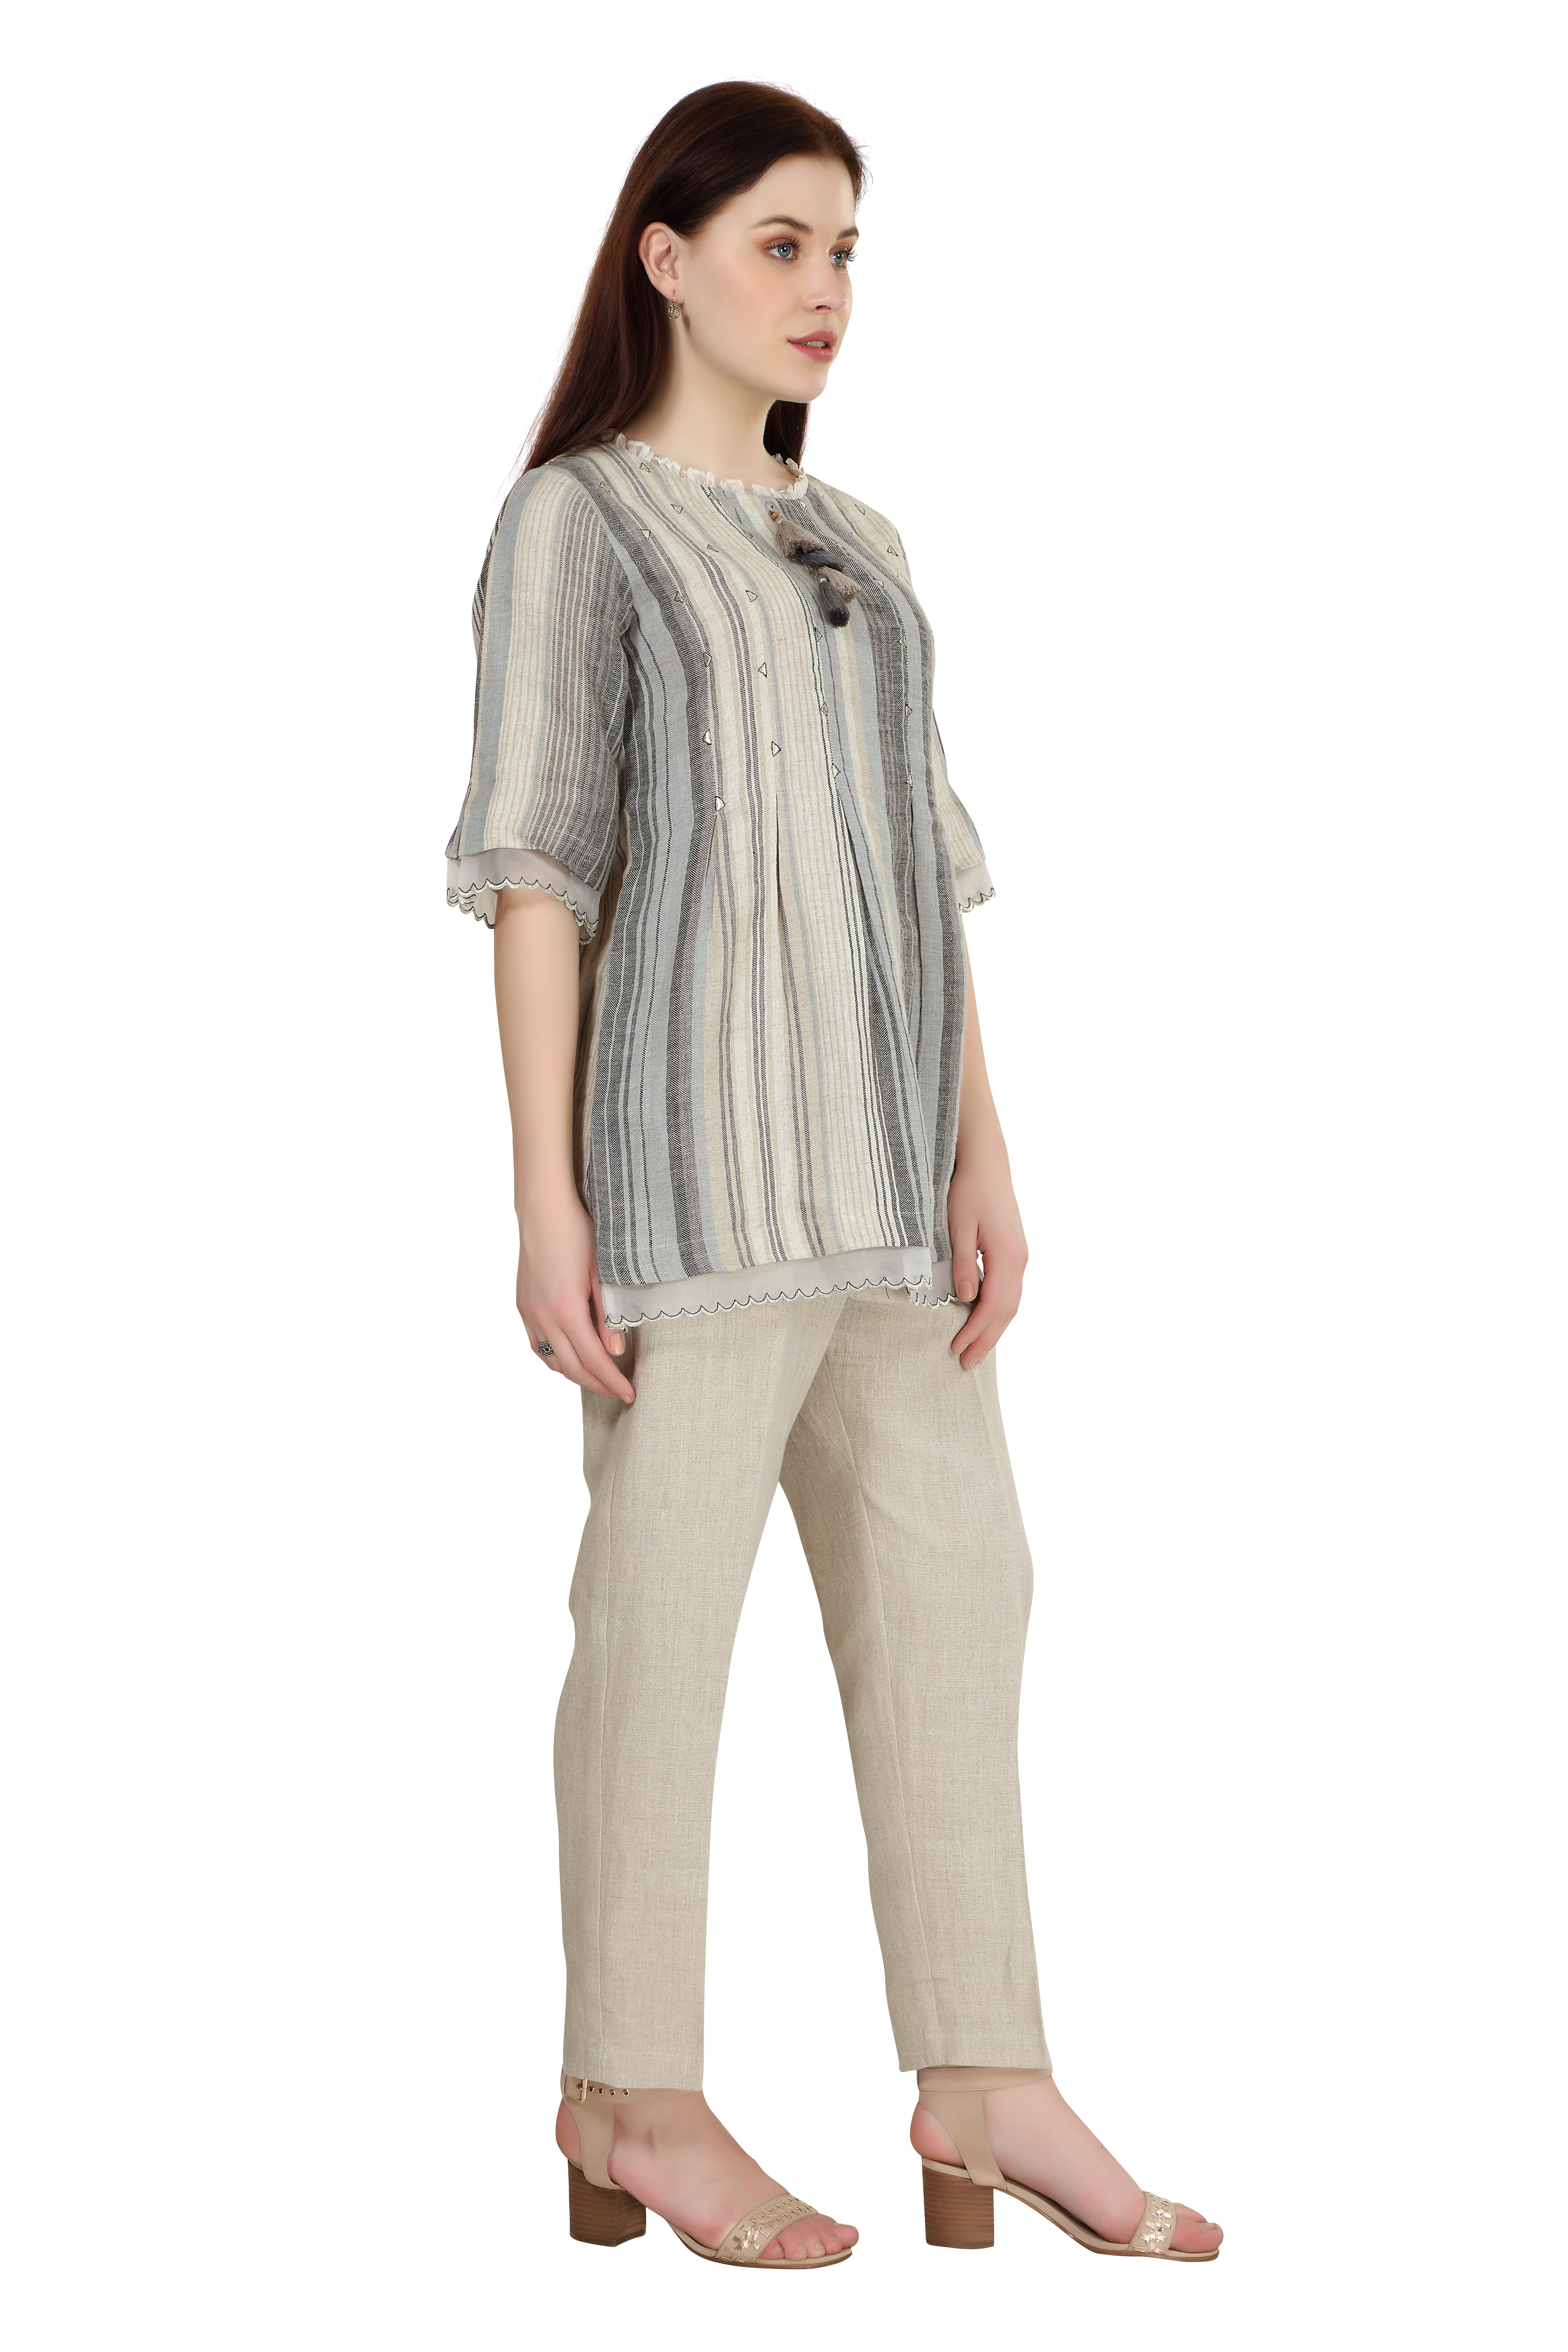 202033 Stone Stripe Linen Top And Natural Pants Co-ord Set XS - Grey (M,Grey)